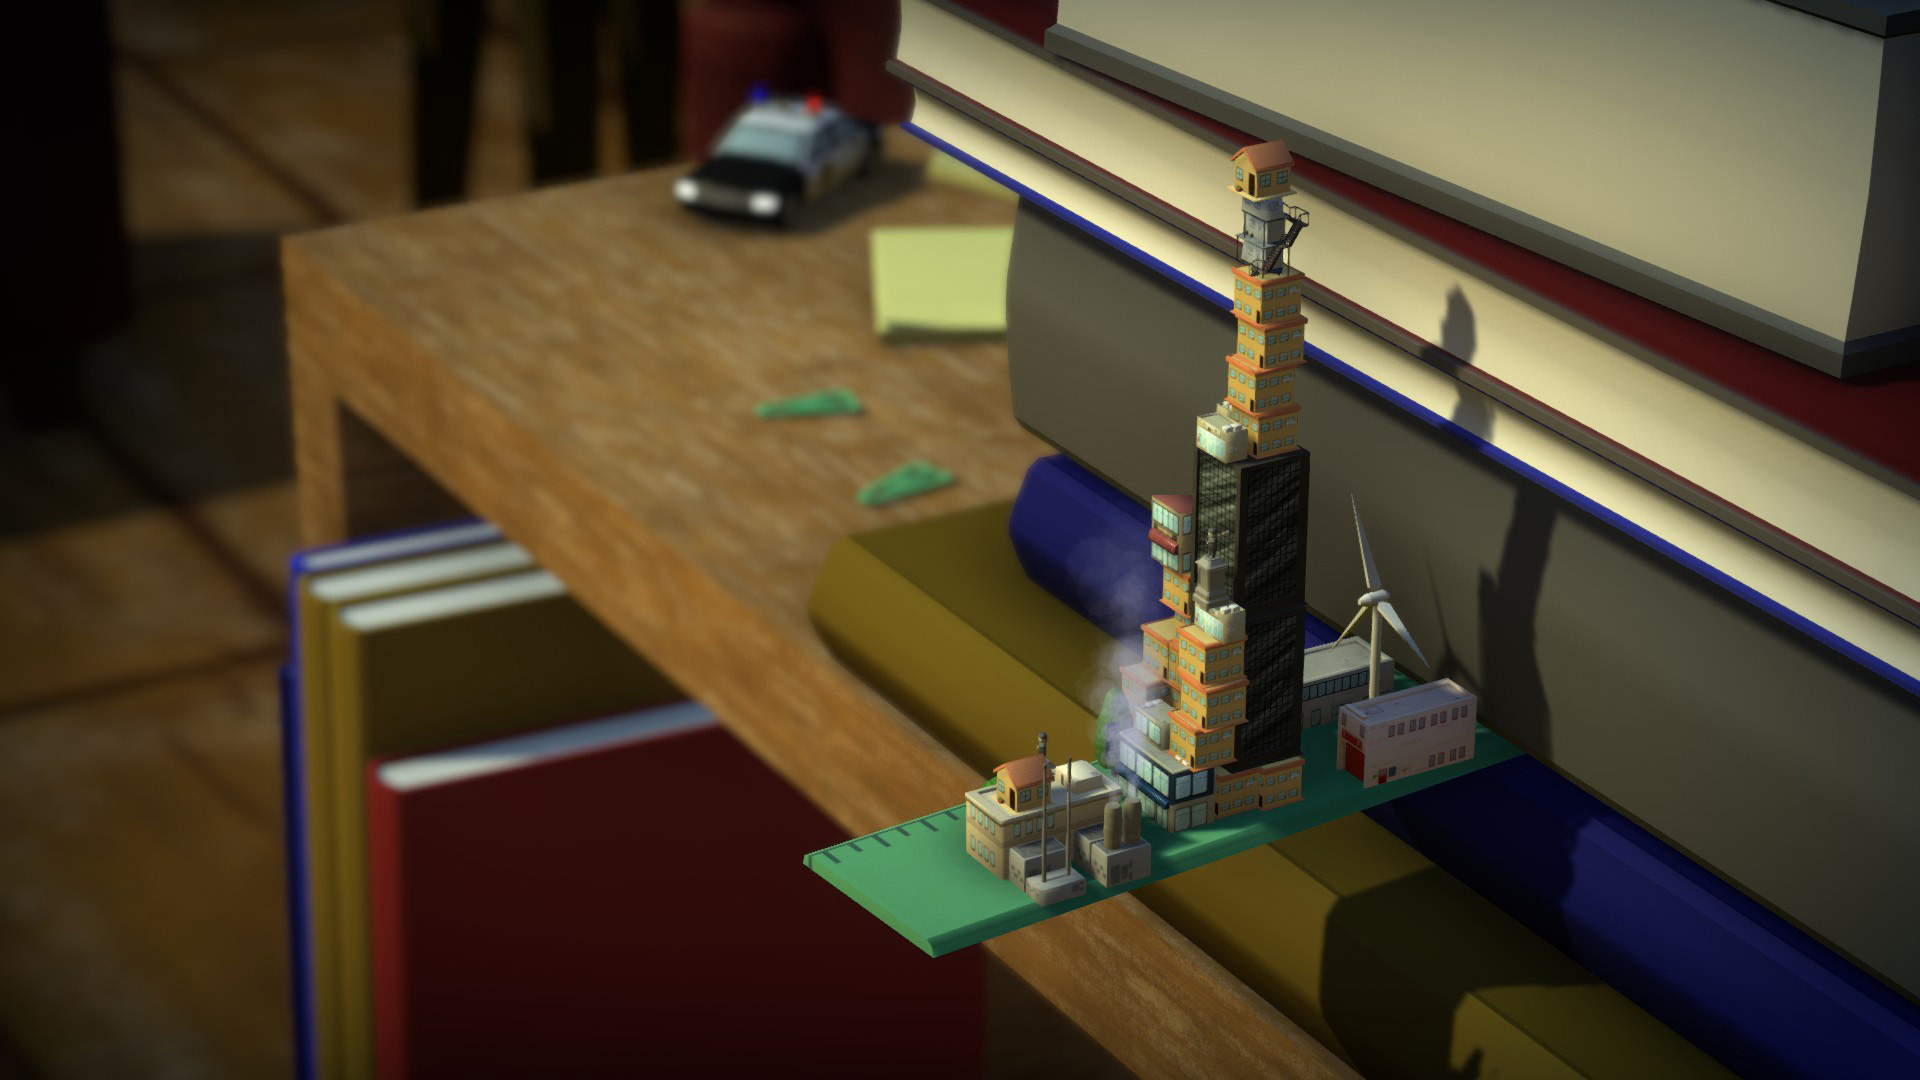 Tinytopia is a miniature city-builder with zany levels screenshot